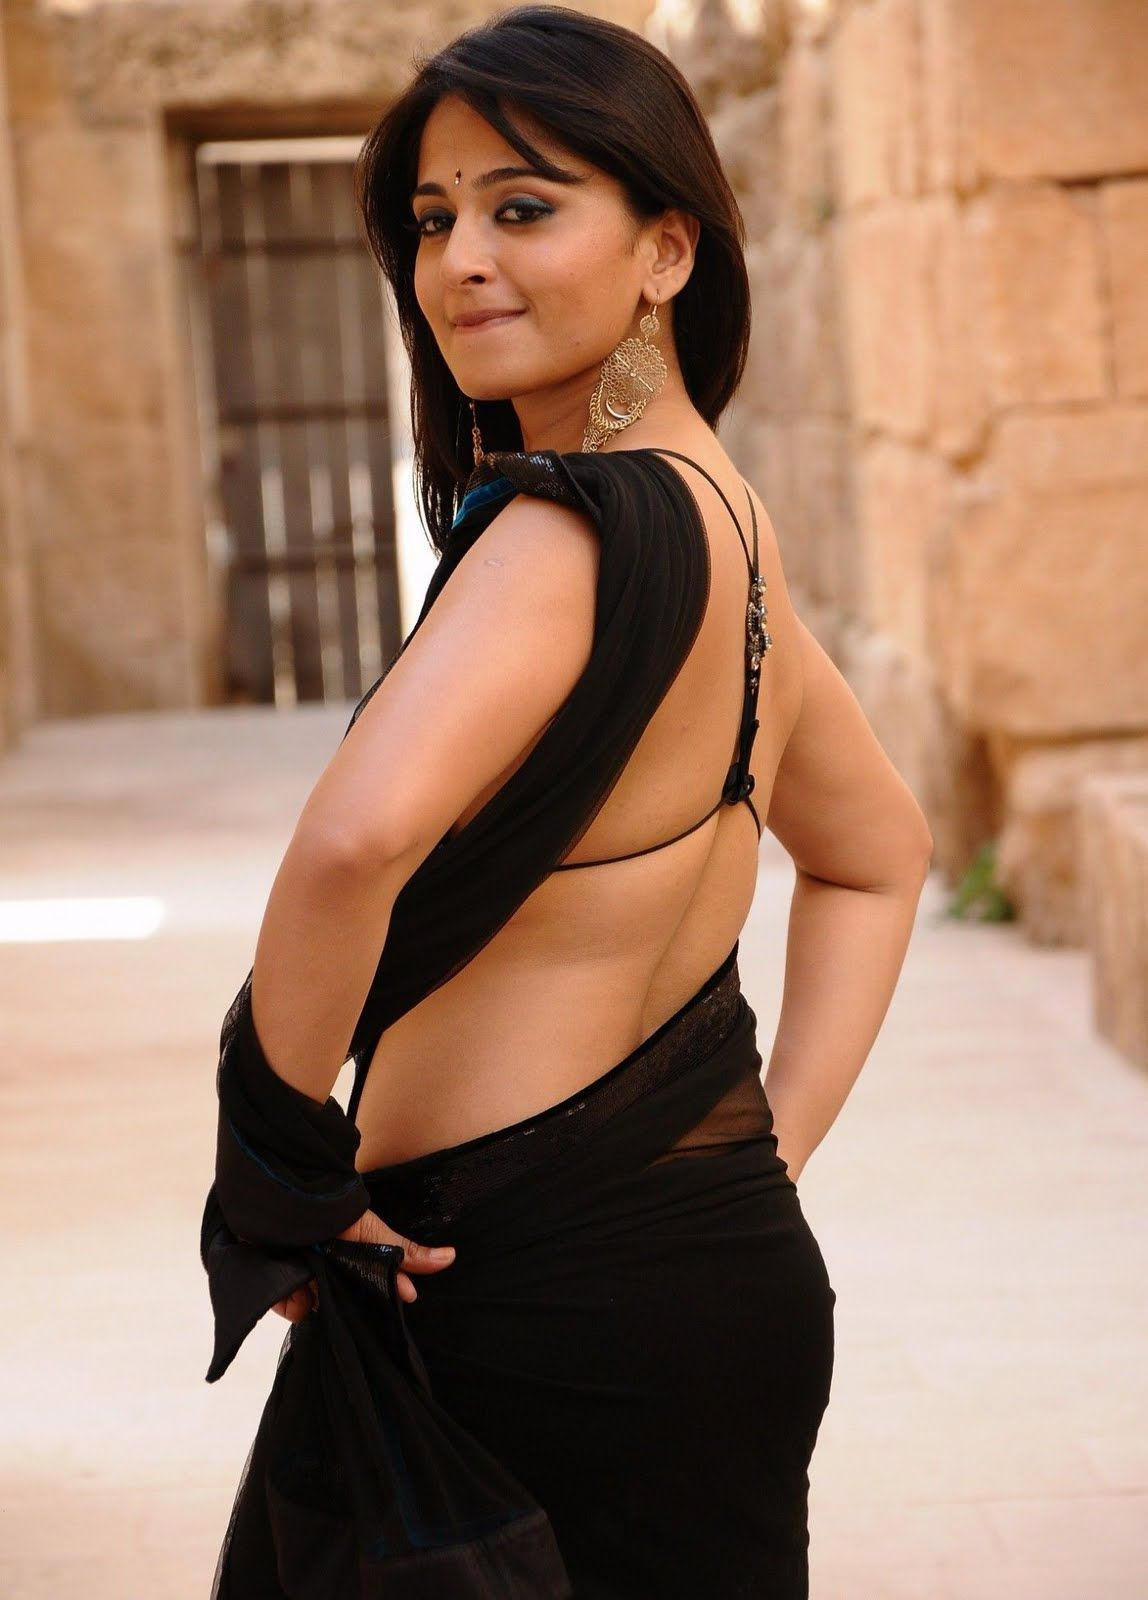 Discover Anushka Shetty Hot Pics In Saree Anushka Shetty Hot Photos Anushka Hot Images Anushka Hot Pics Anushka Shetty Pics